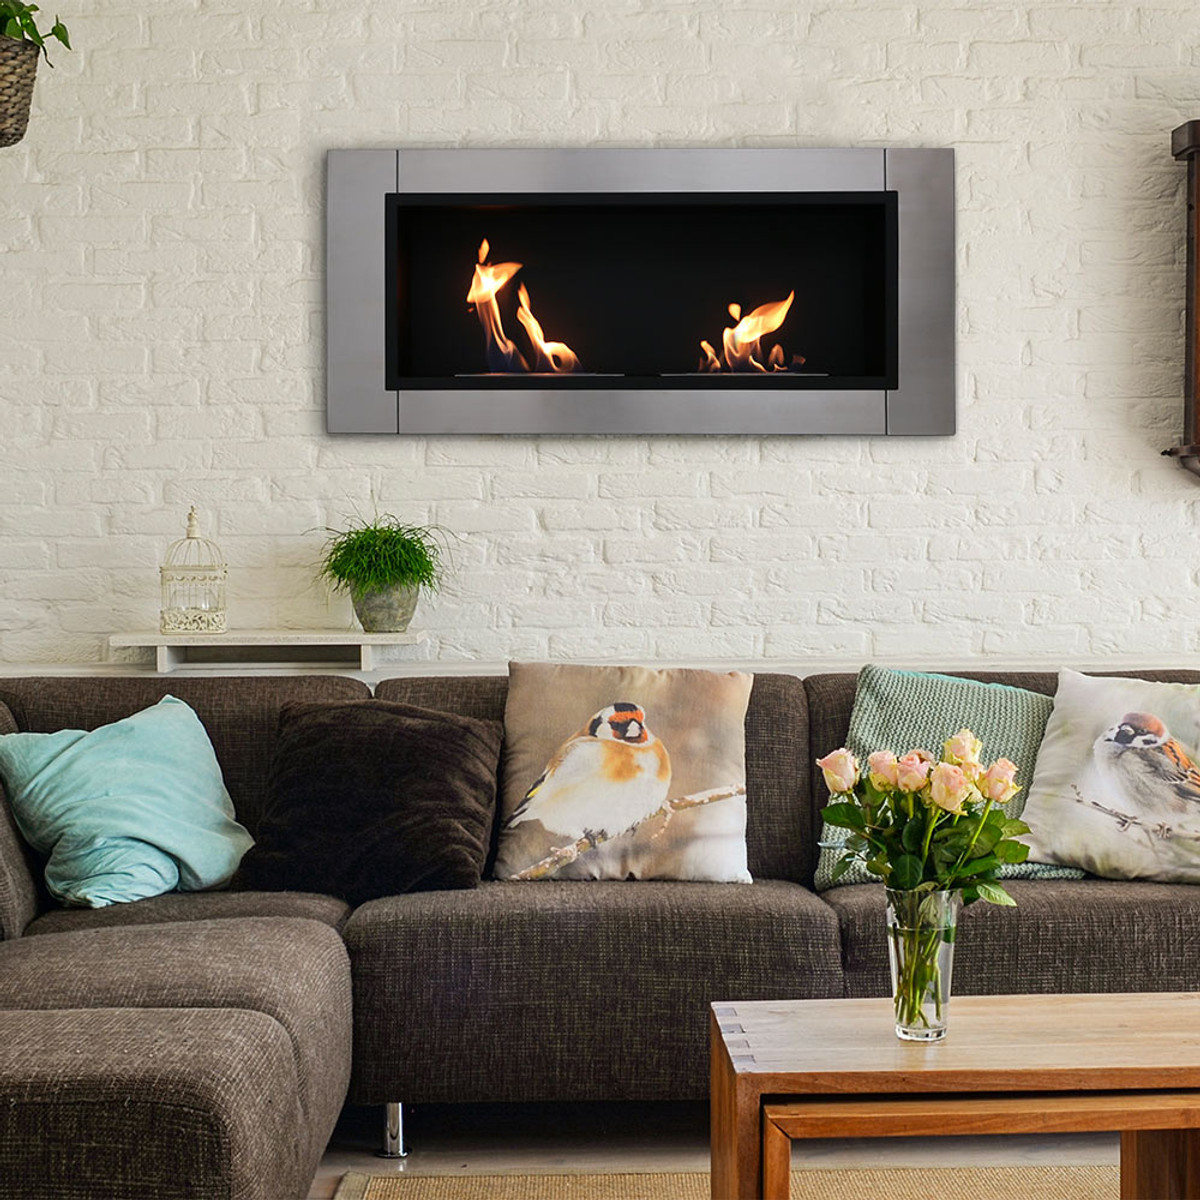 Ethanol Fireplaces Reviews Sunnydaze Scalda Ventless Wall Mounted Bio Ethanol Fireplace 43 Inch